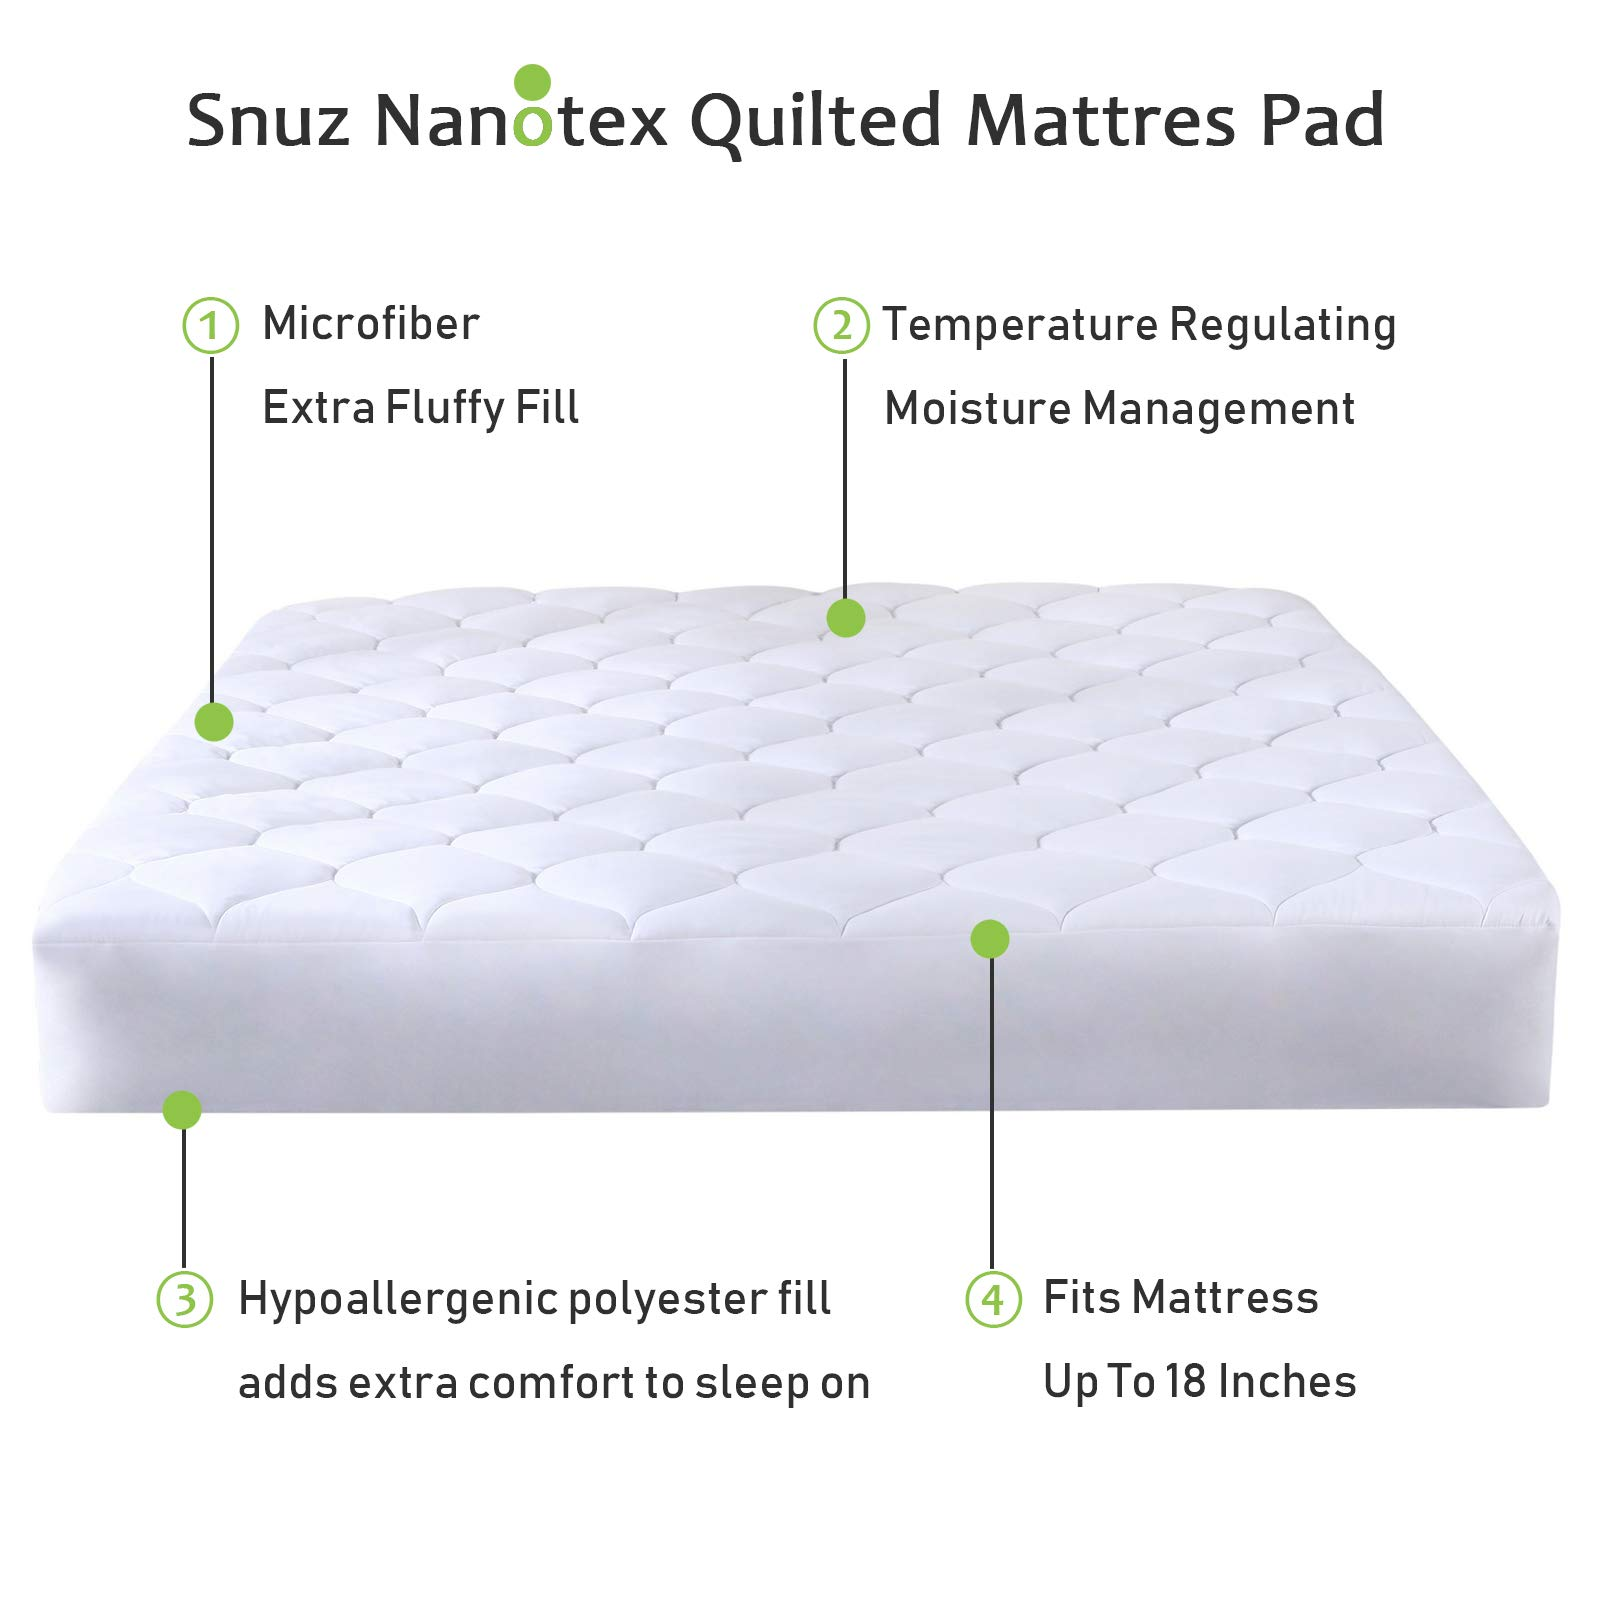 Mattress Pad Quilted Fitted Featuring Nanotex Coolest Comfort Temperature Regulating Cooling Technology. Super Soft SPA Grade Microfiber. Guaranteed to Fit Up to 18 Inch Mattress. (Full Size)